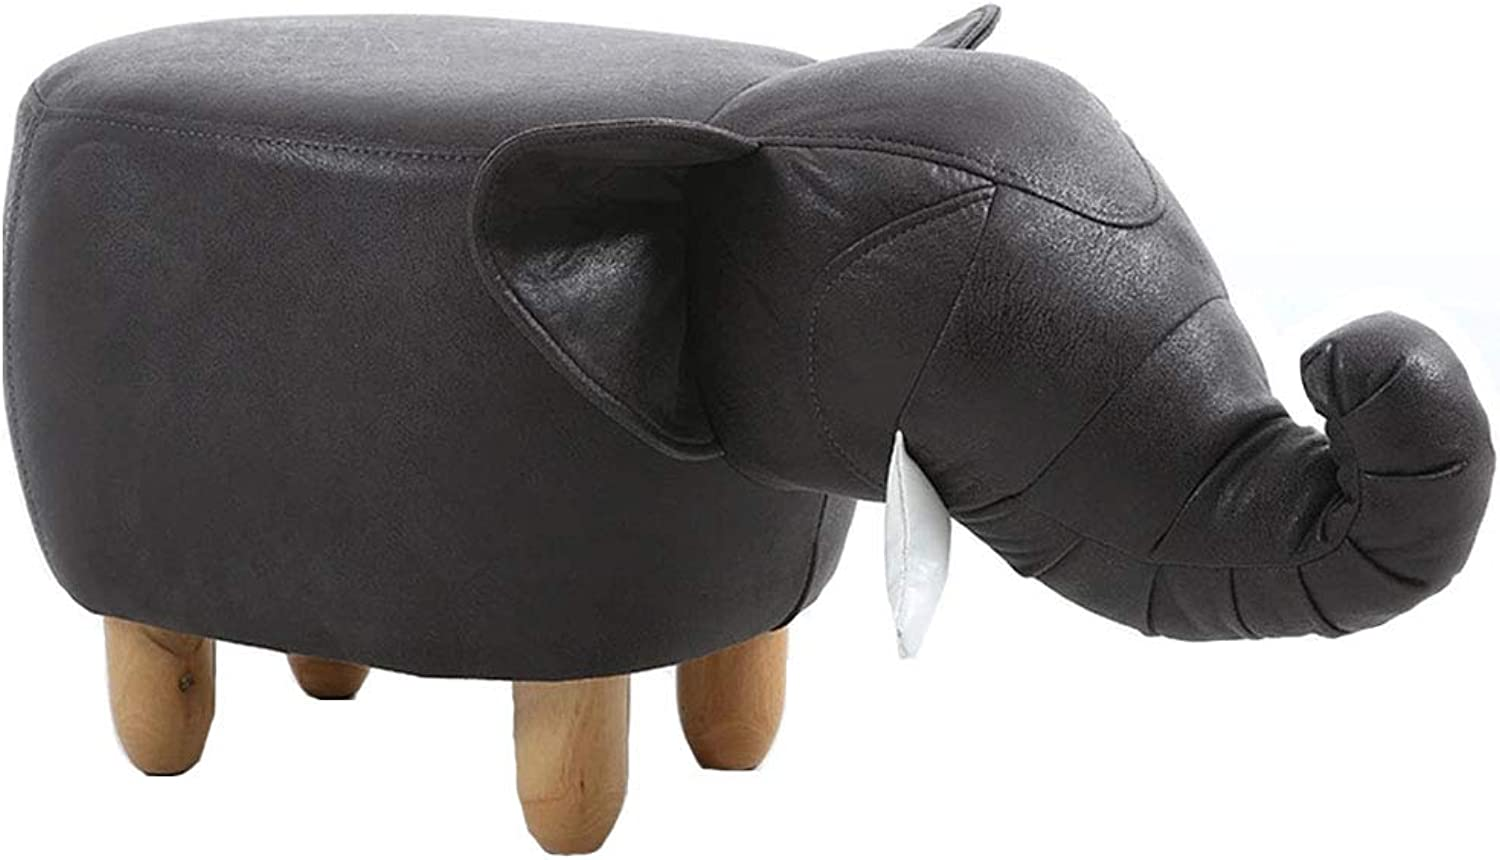 Elephant Footstool, Stool Solid Wood Sofa Stool and Pouffes with Wooden Leg 63 x 36 x 33 cm,black1